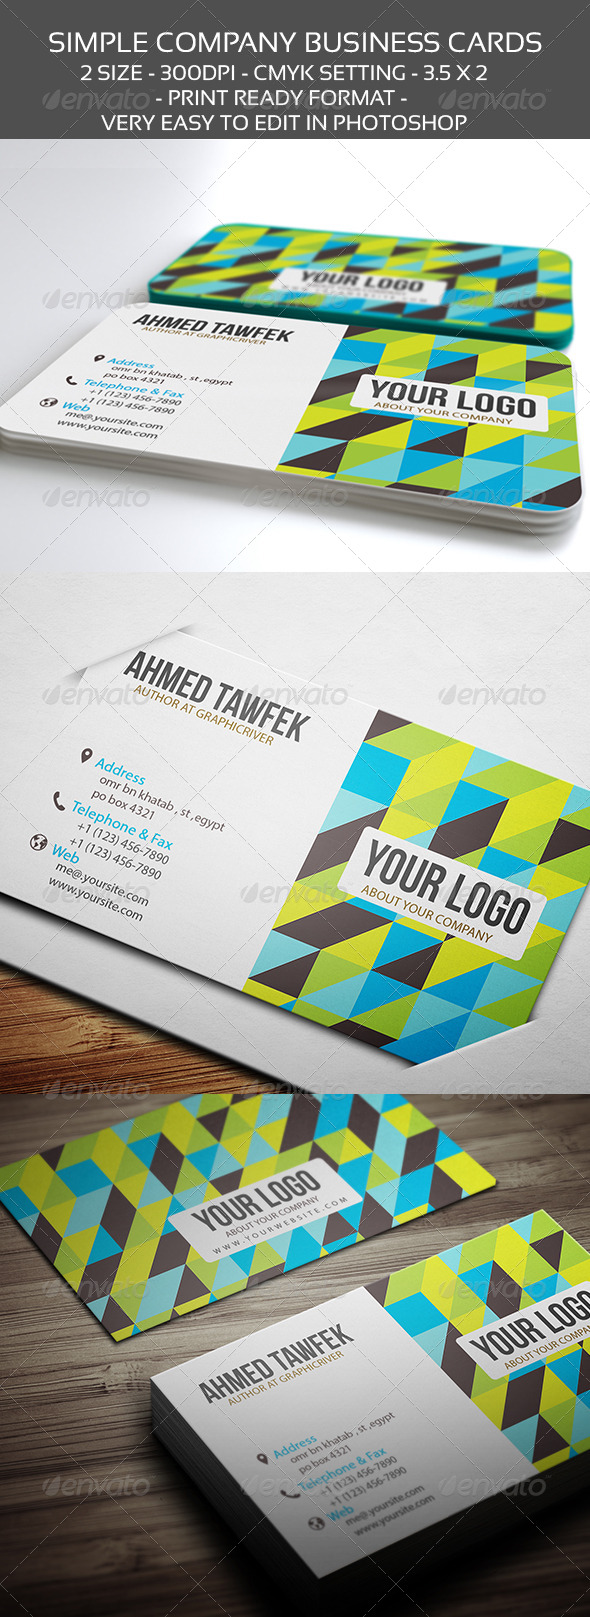 GraphicRiver Simple Company Business Cards 4419389